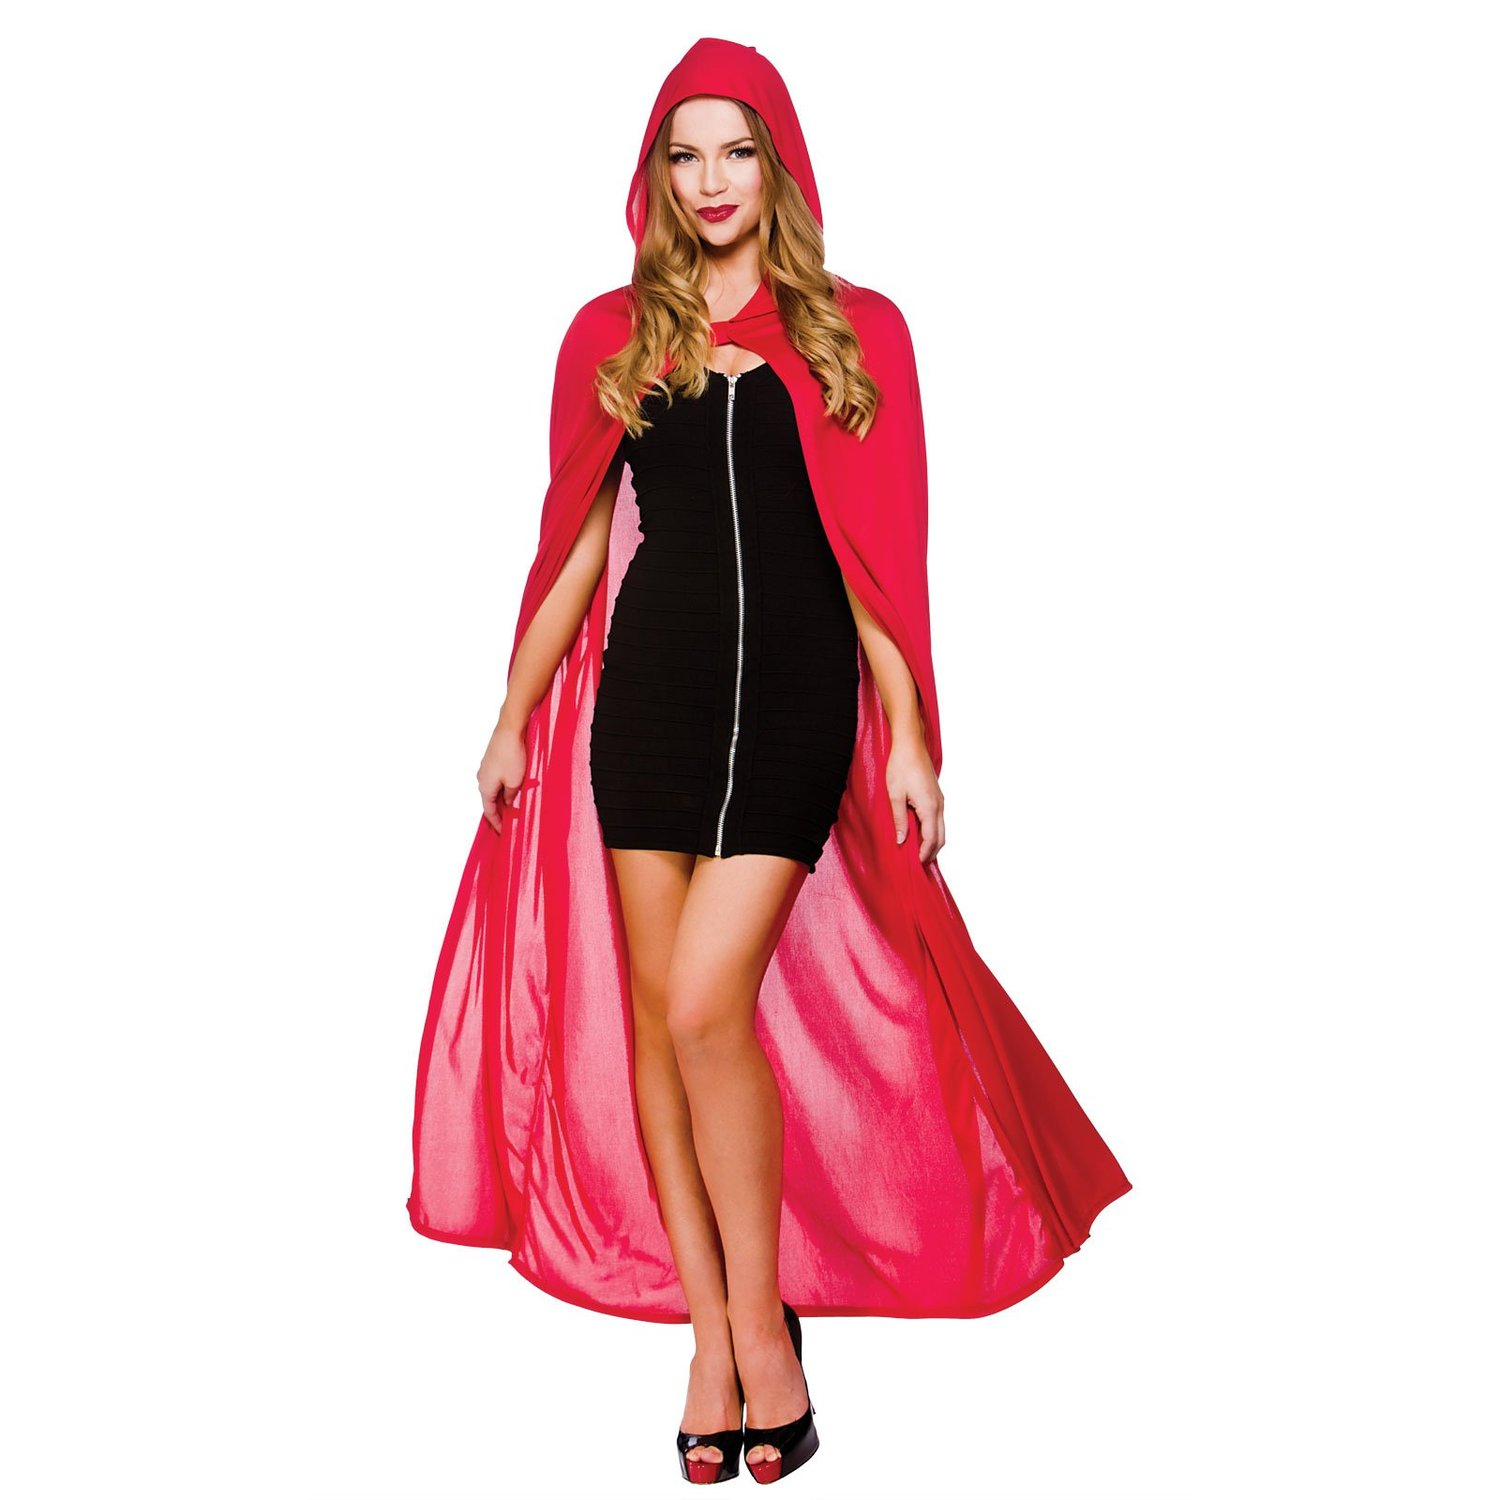 Unisex red adult hooded cape (wicked hf5095)